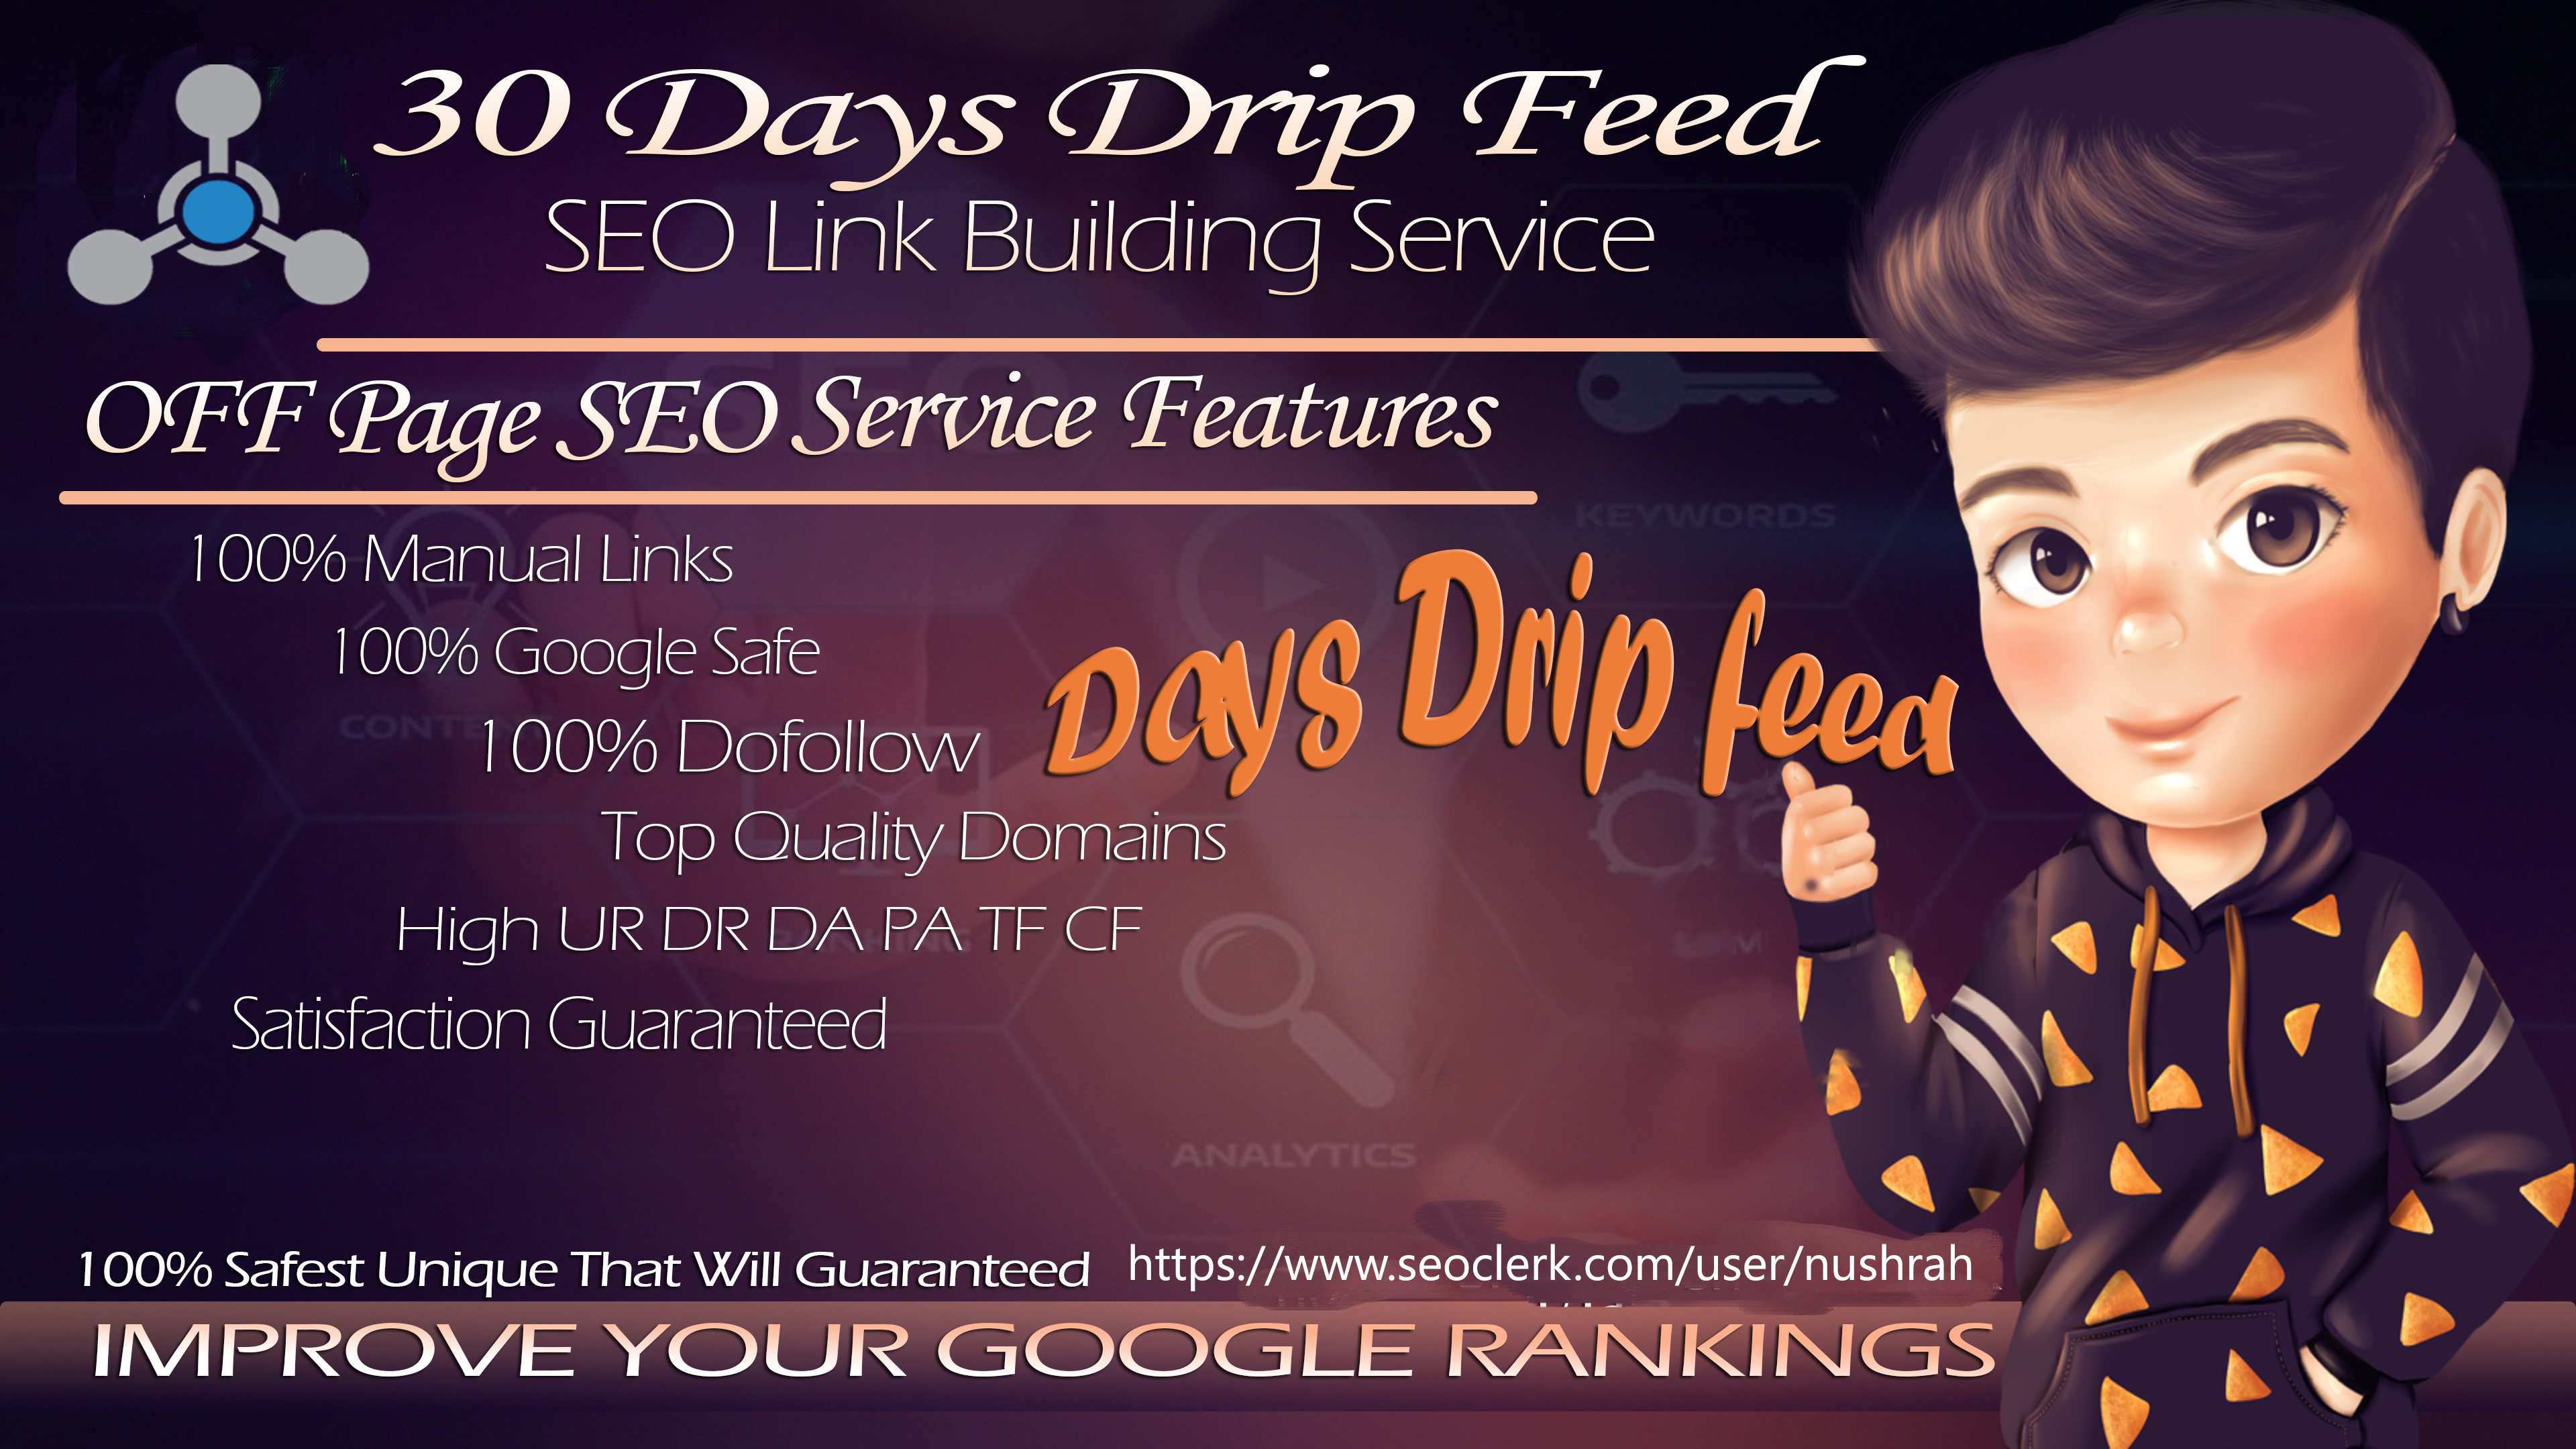 Monthly SEO Service- Rocket Your Ranking And Increase Domain Authority With High Quality Back links